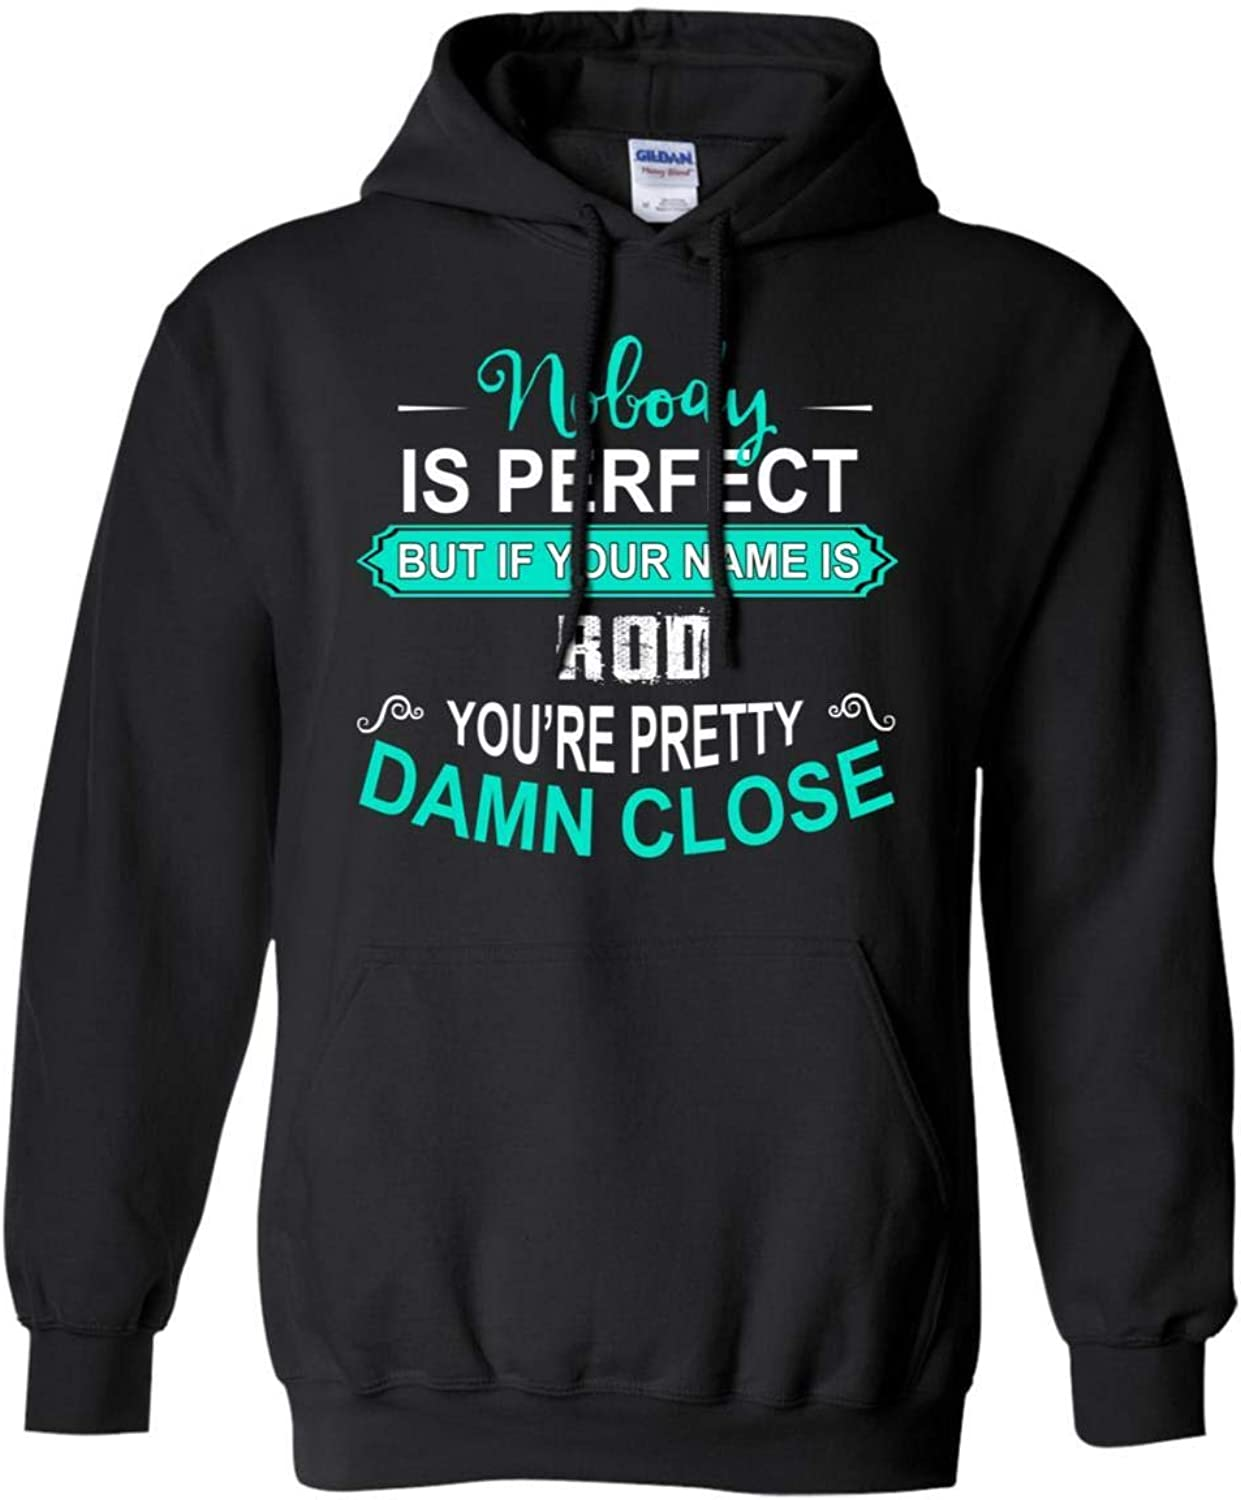 Nobody is Perfect But If Your Name is Rod You're Pretty Damn Close Mens Clothing Hoodie Sweatshirt Xmas Gifts